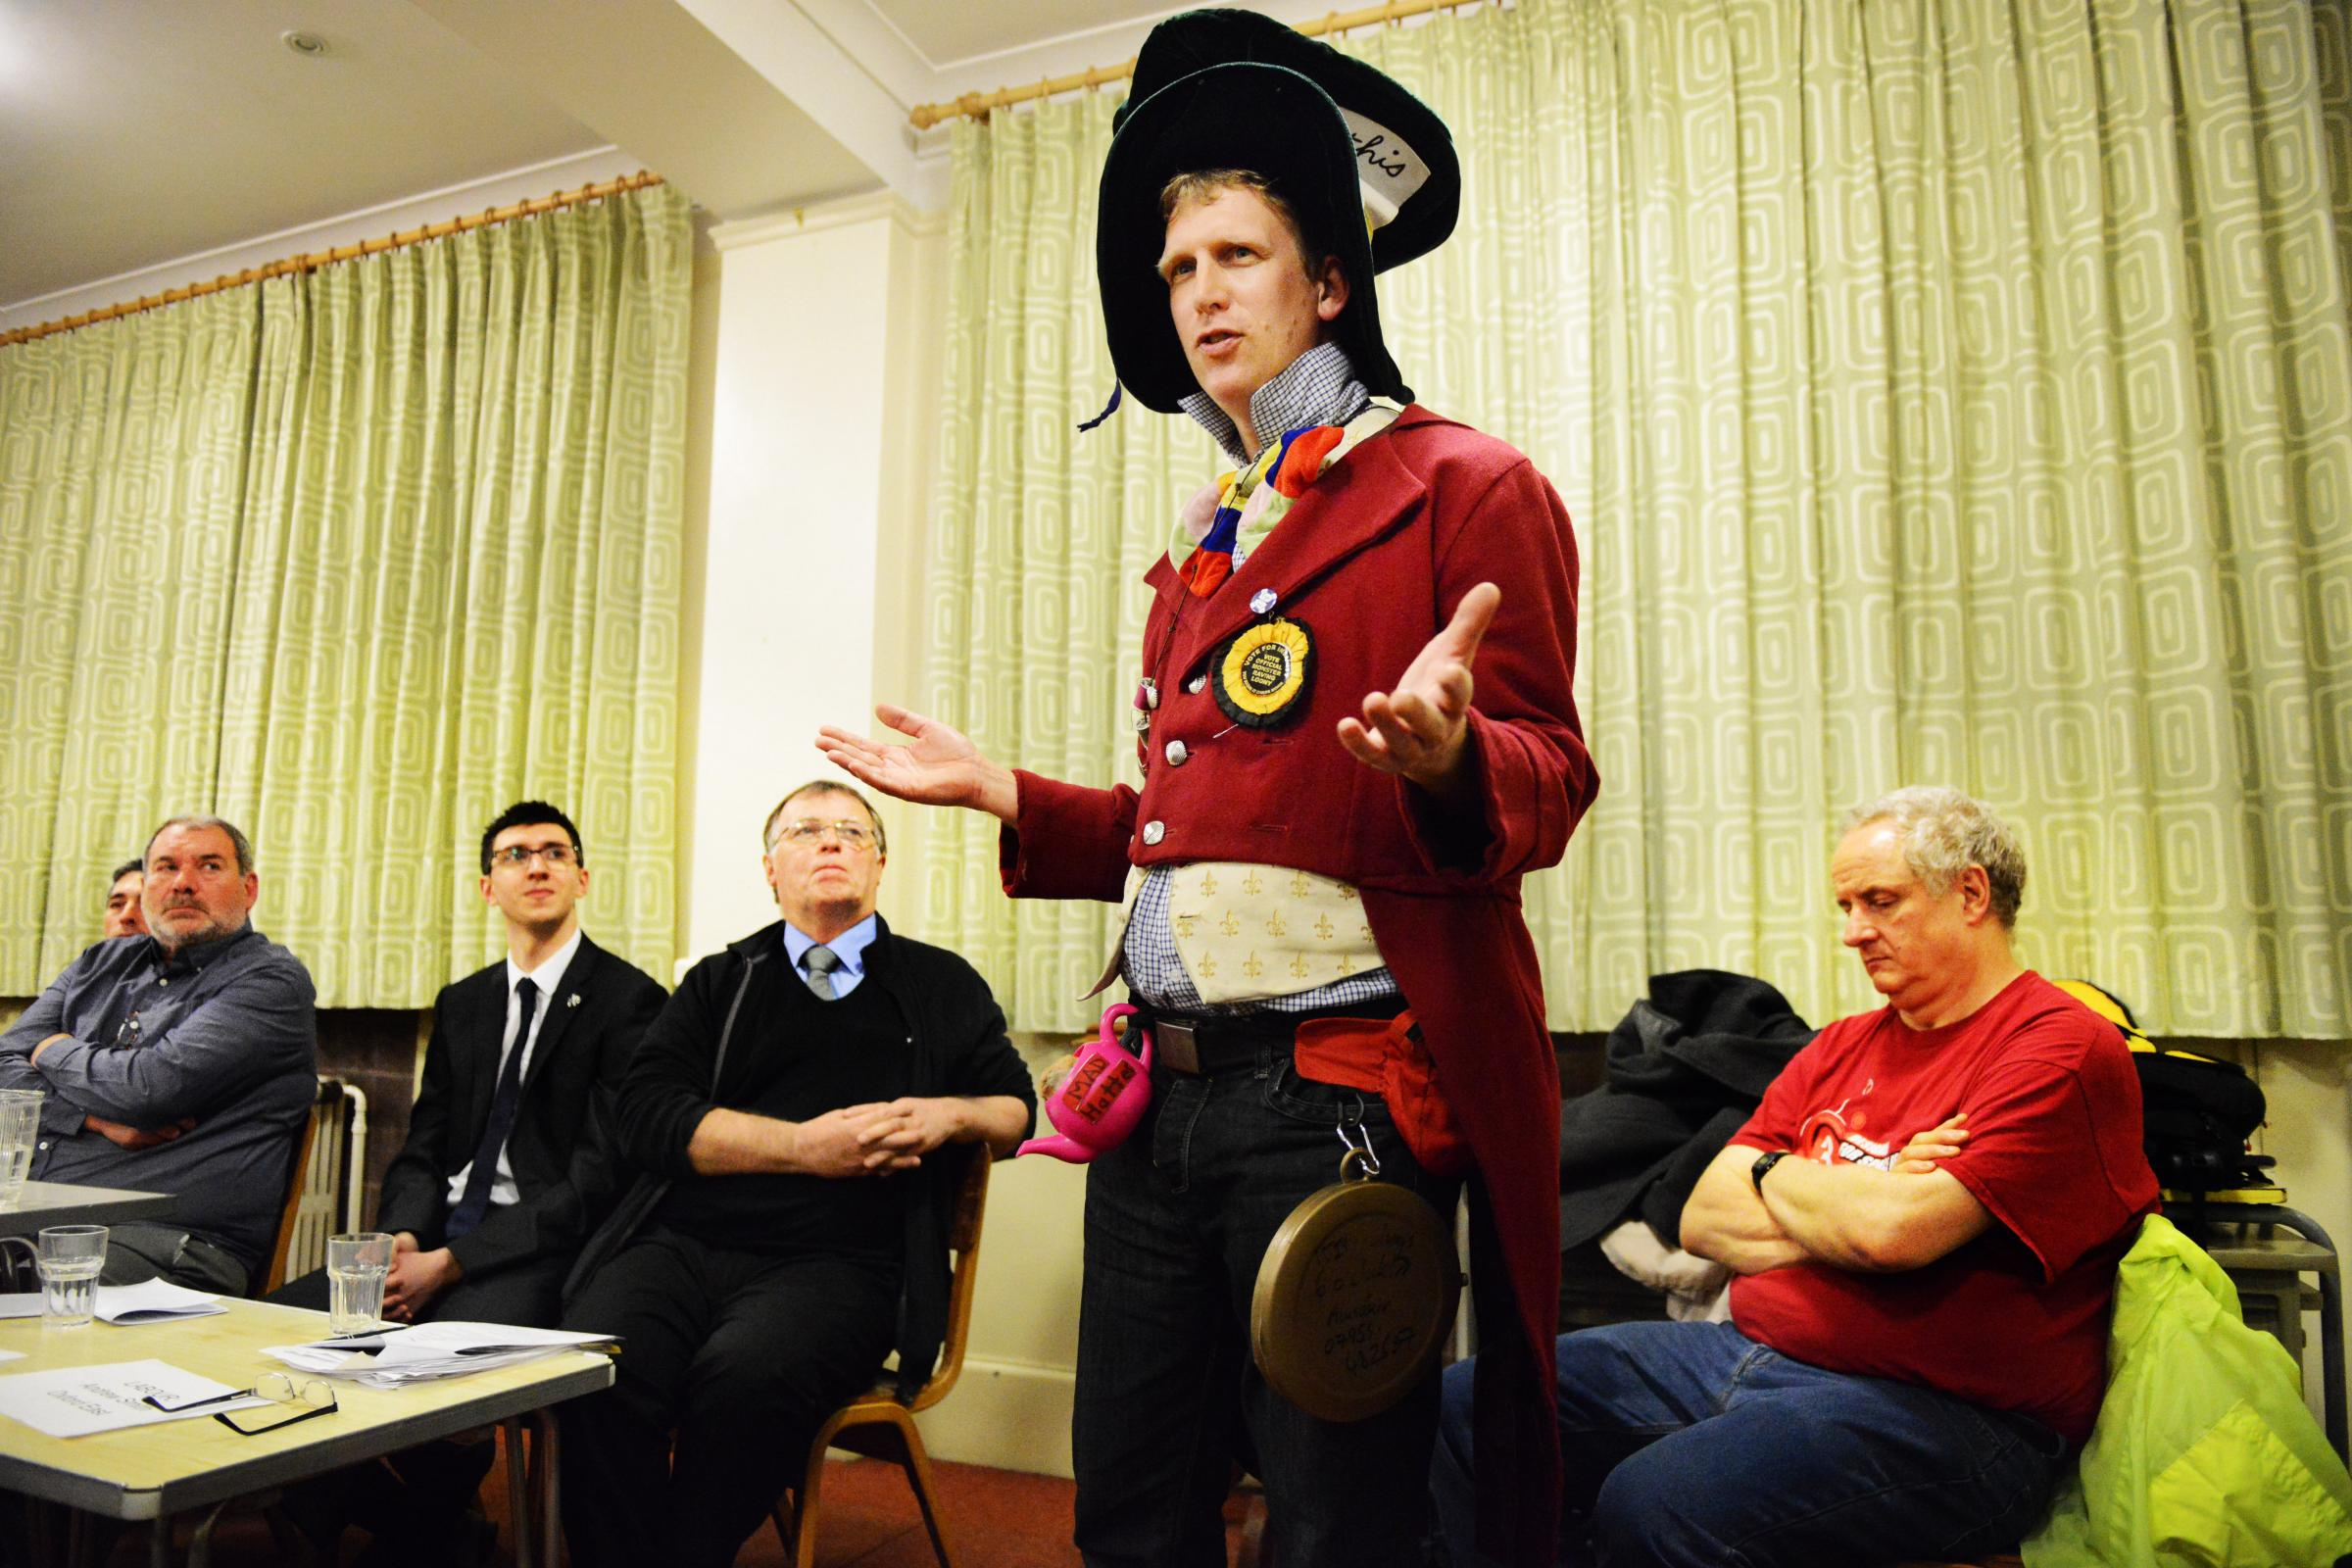 Alistaire de Voil, of the Monster Raving Loony Party, tells the hustings event how politicians in Westminster are out of touch. Pictures: Richard Cave